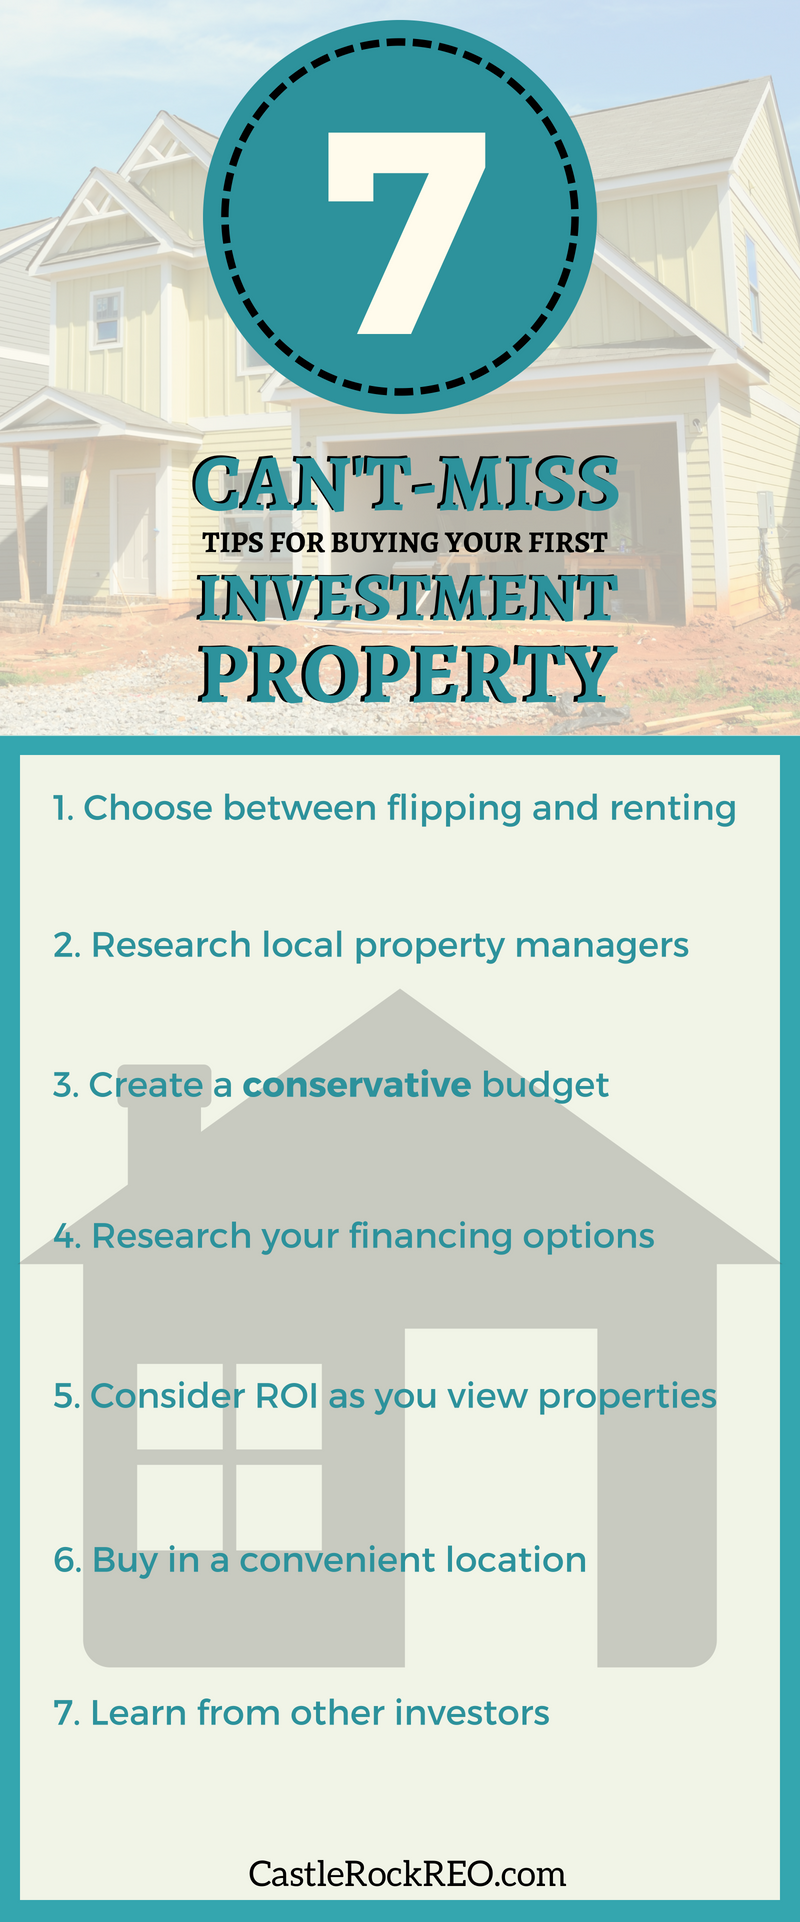 Graphic - 7 tips for first-time real estate investors